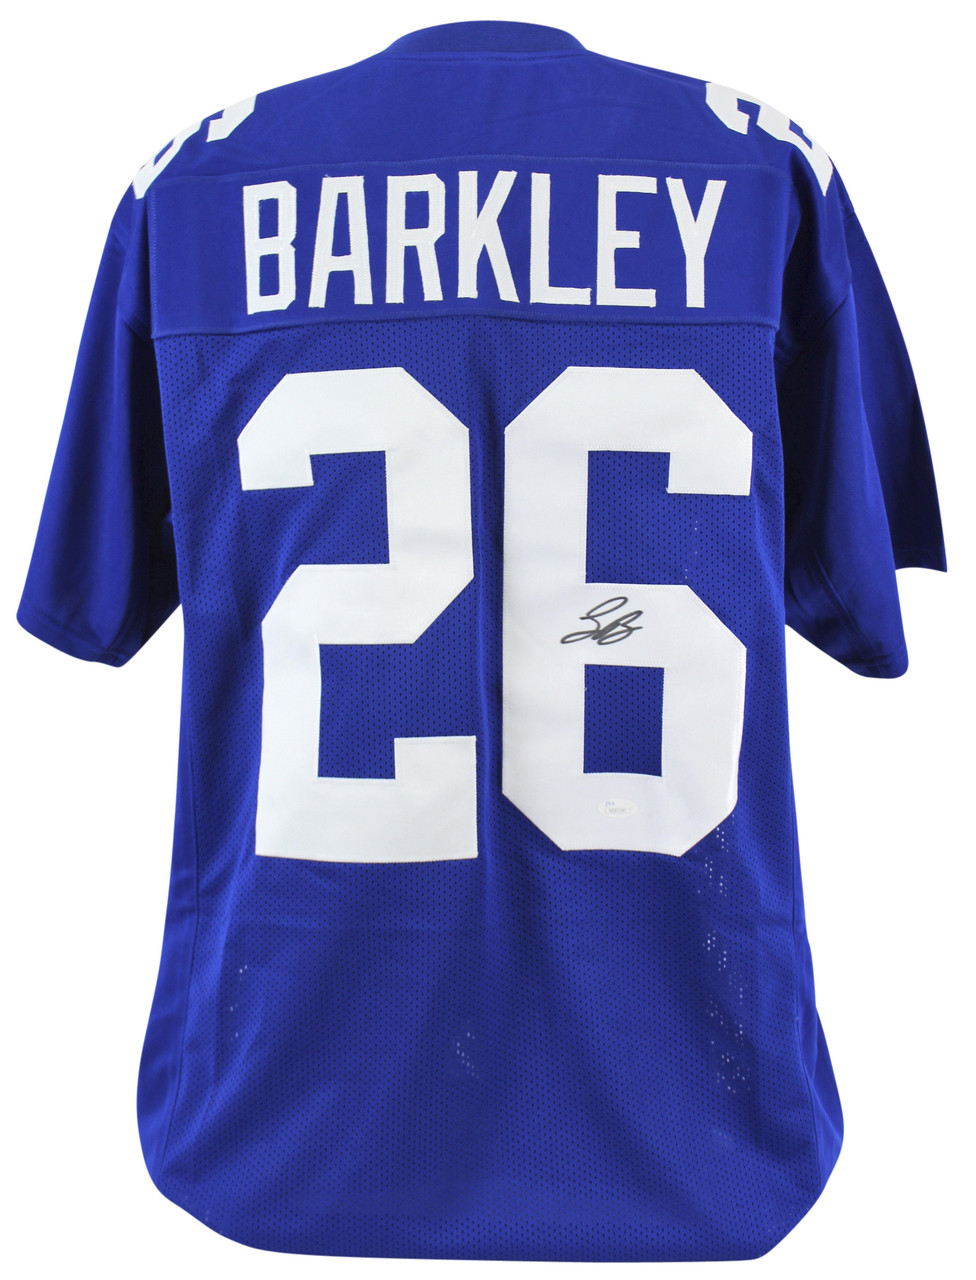 info for 0db17 a2848 Saquon Barkley New York Giants Autographed Custom Football Jersey